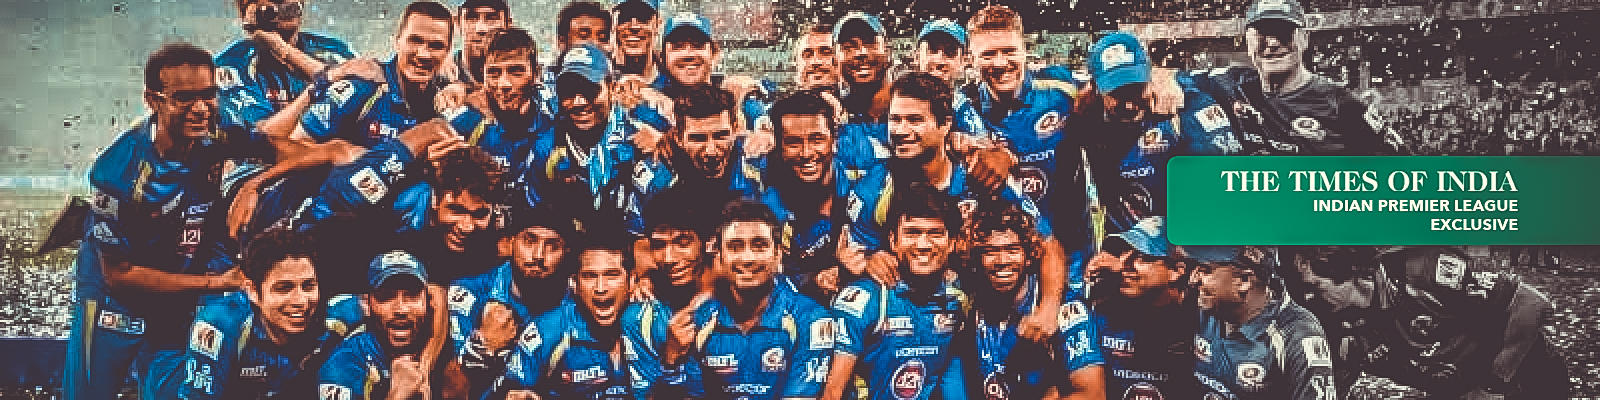 Teams  with most boundaries in IPL history